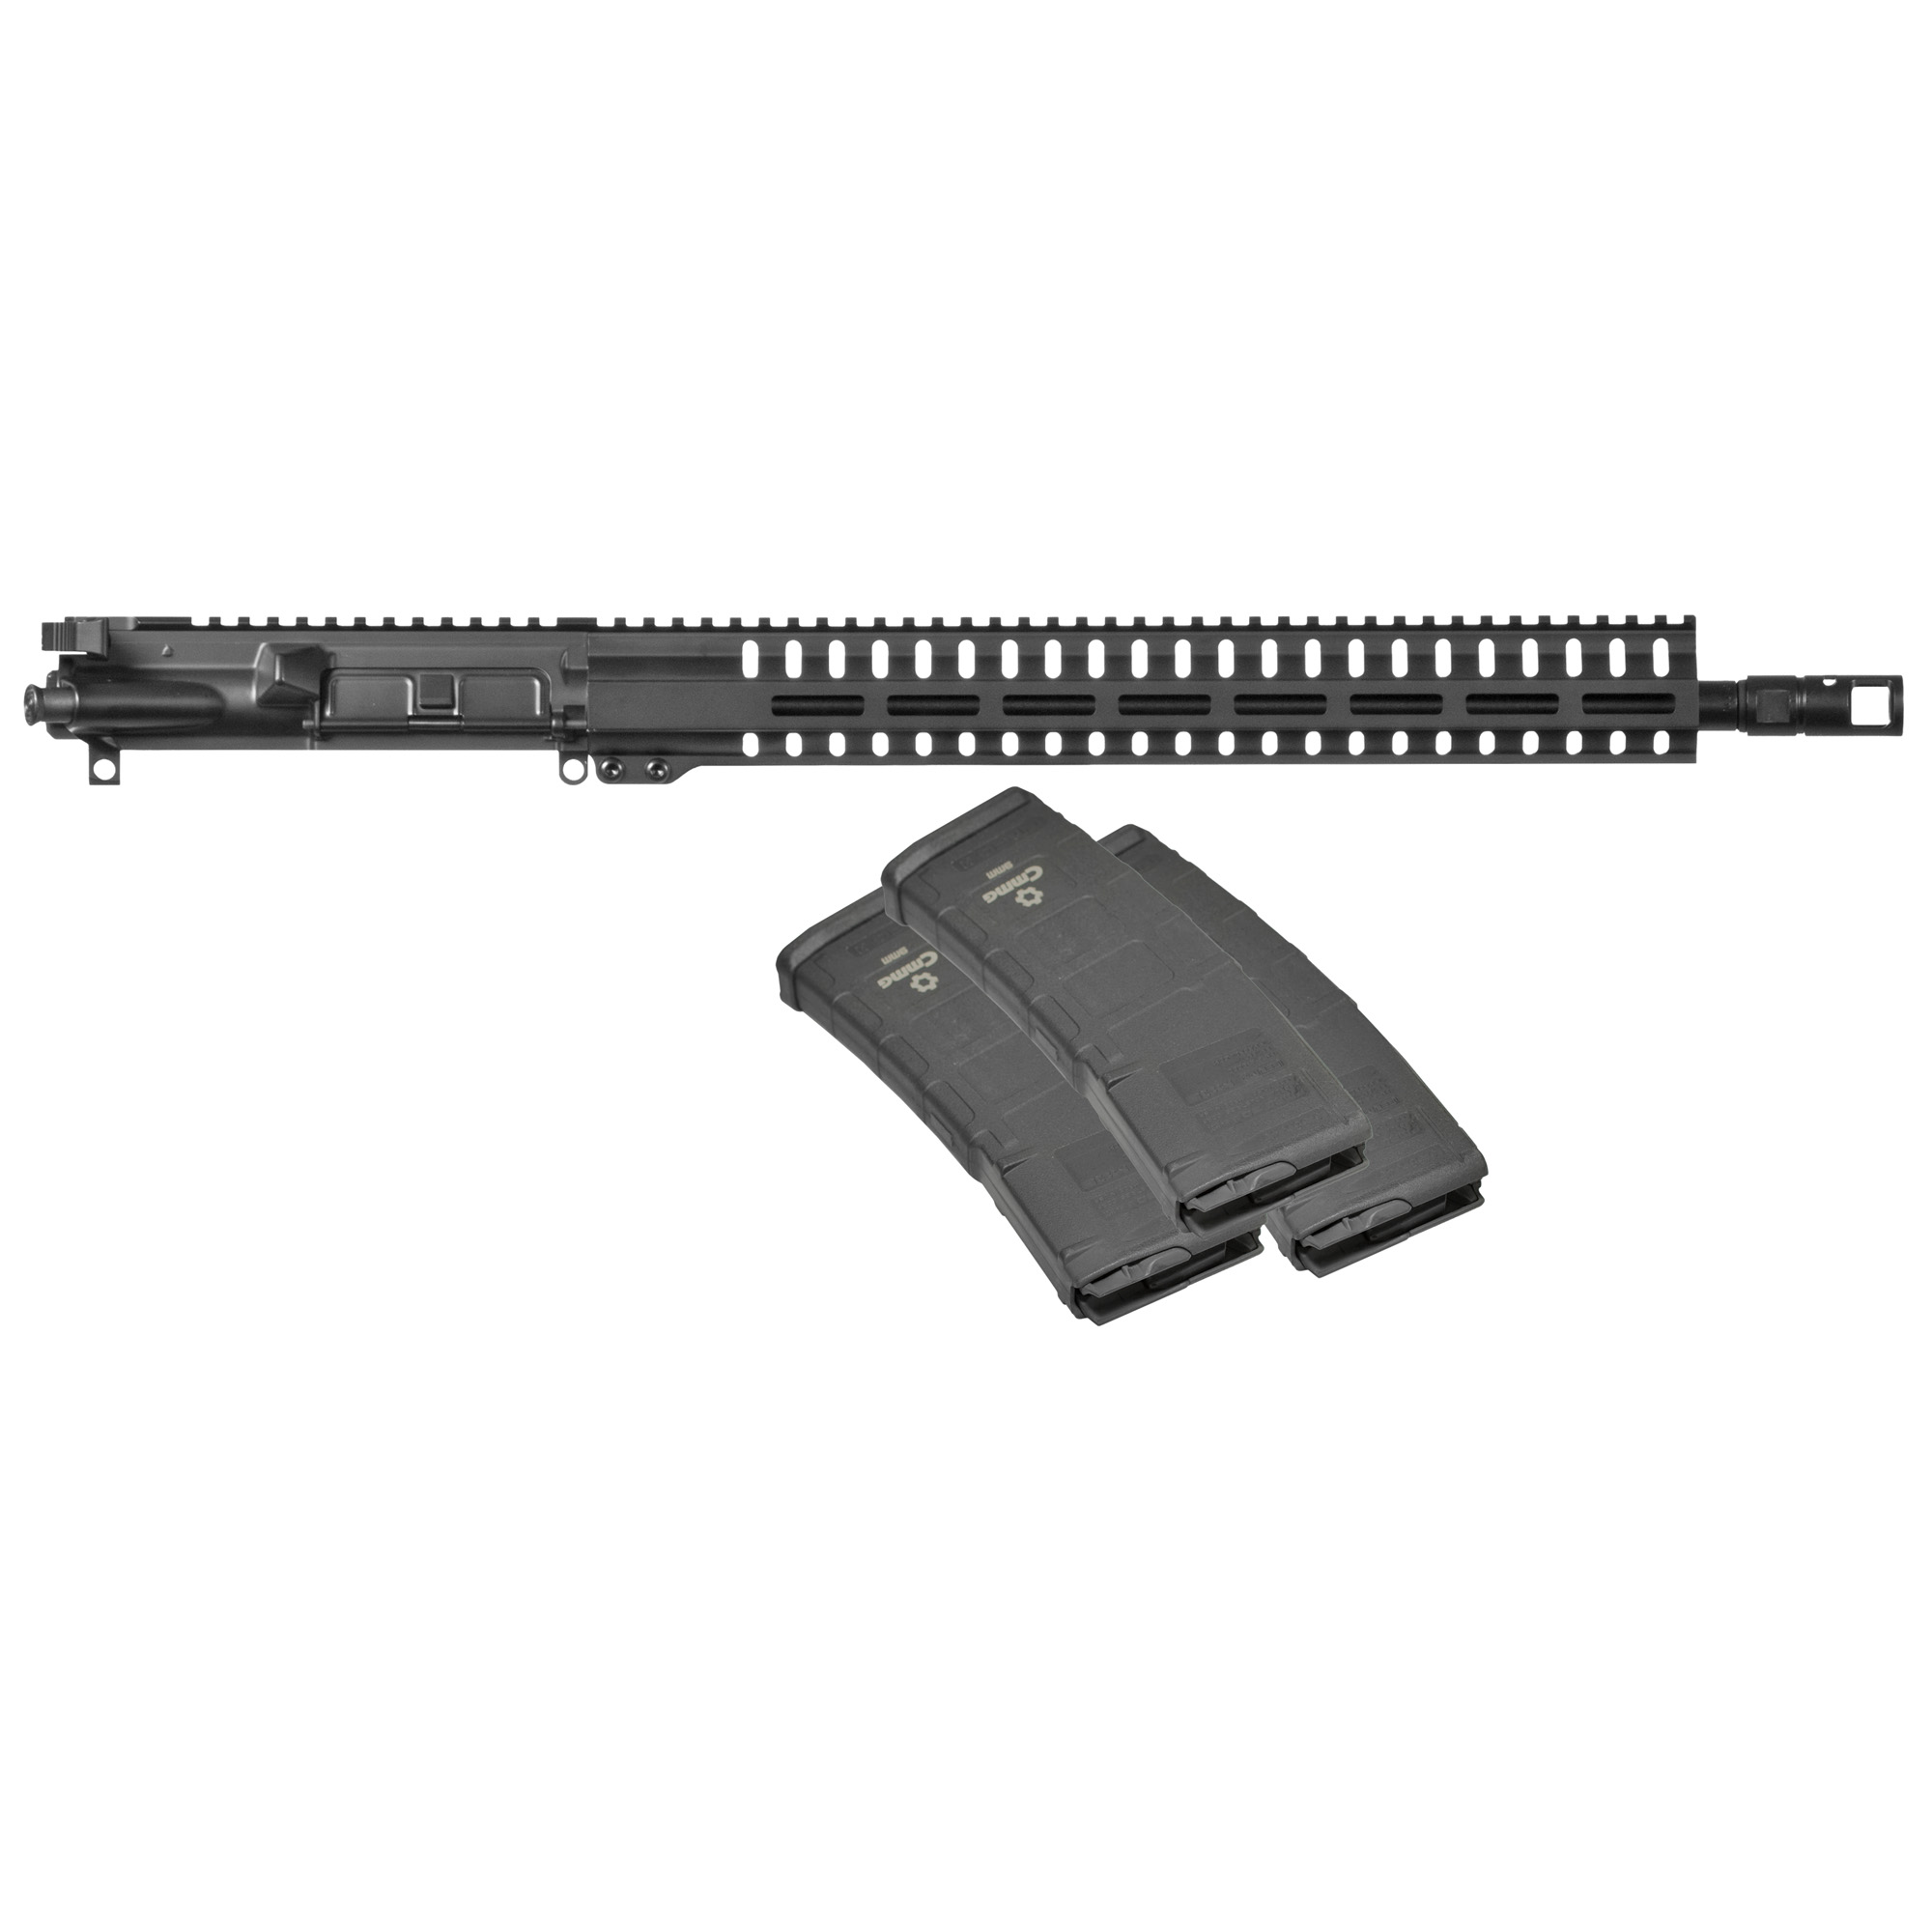 CMMG Cmmg Uppr Kit Resolute 300 9mm 3-30